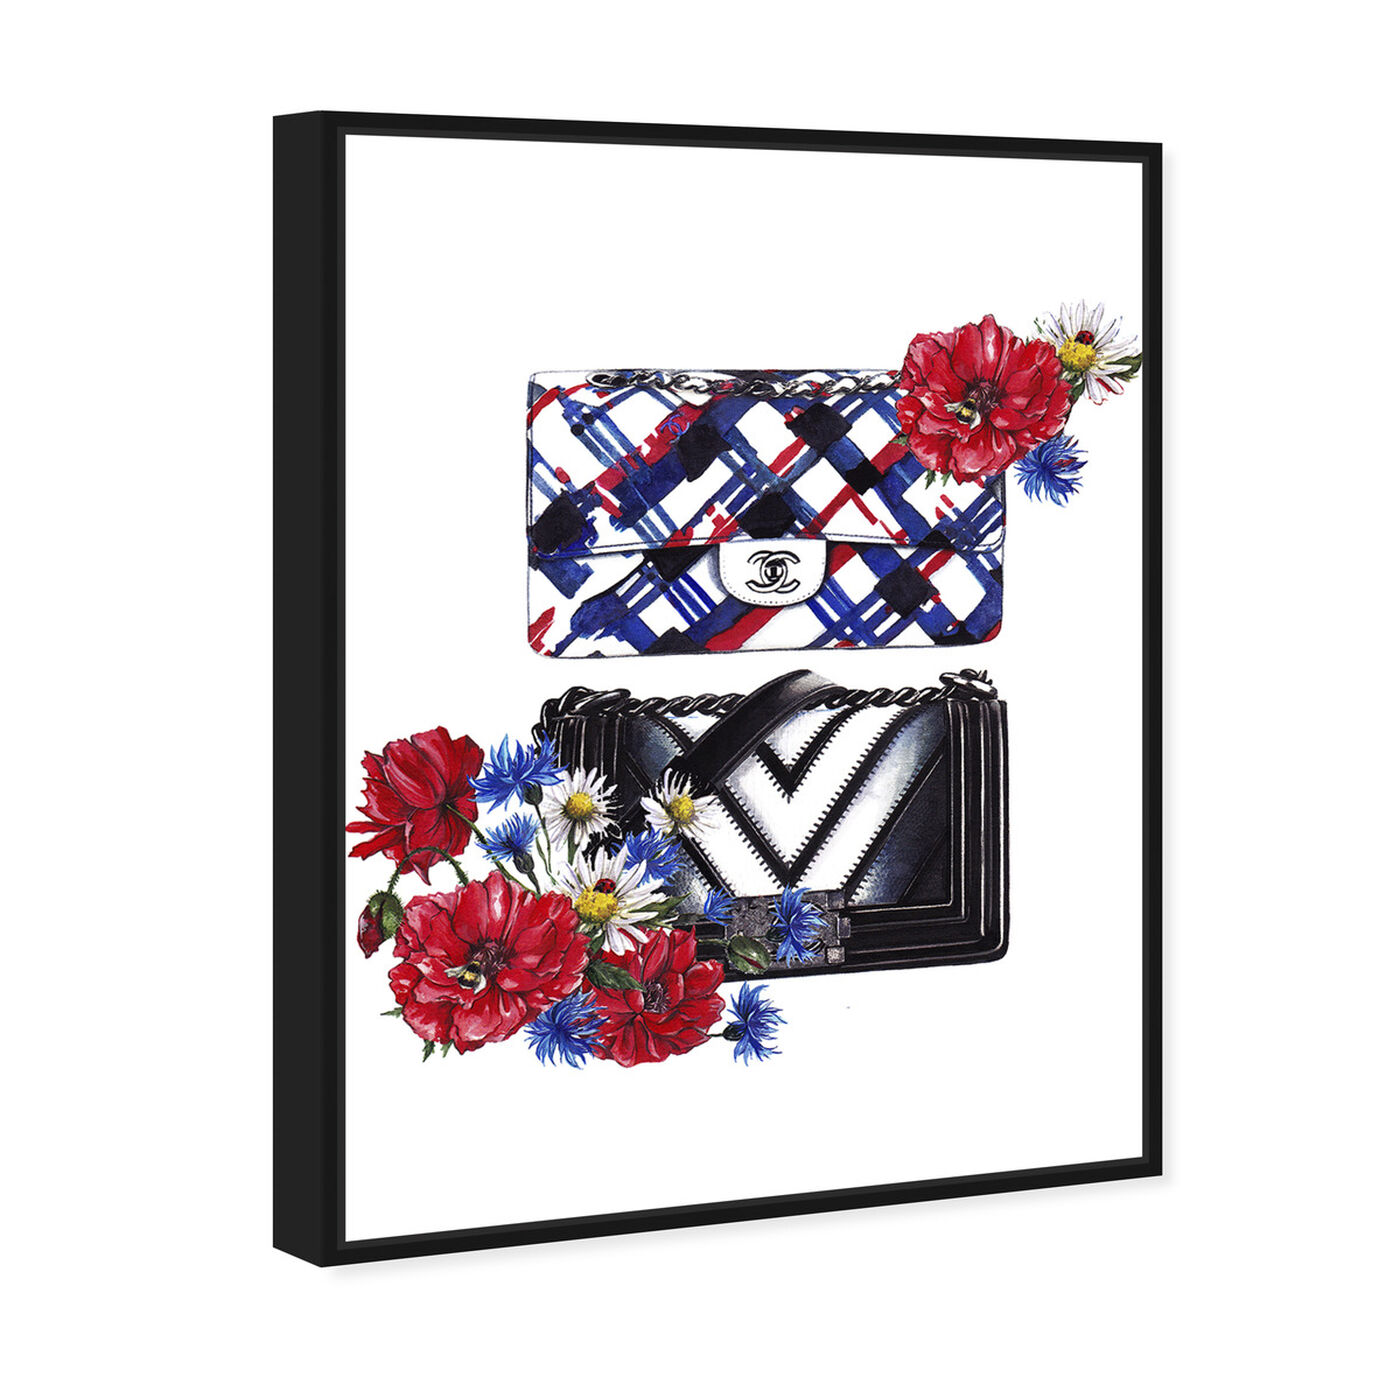 Angled view of Doll Memories - Bags Floral featuring fashion and glam and handbags art.